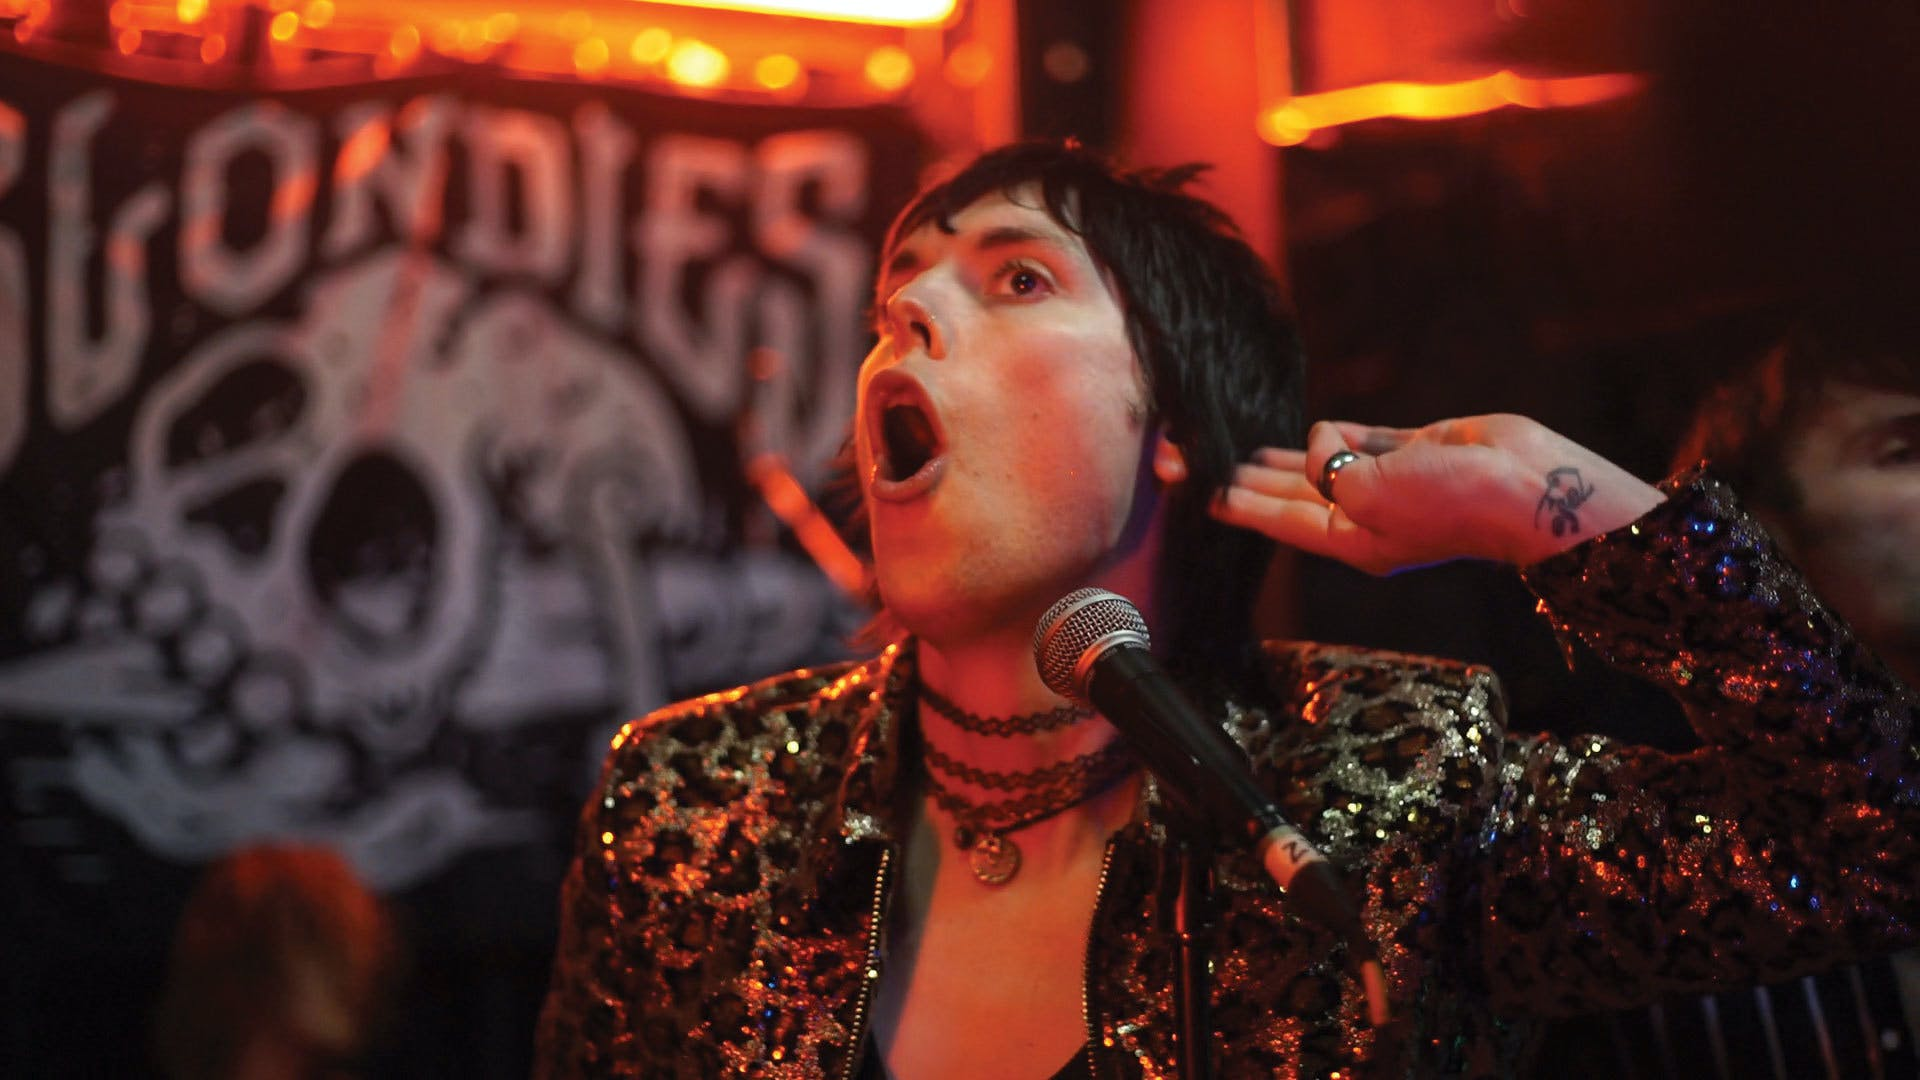 Watch The Struts Bring Some Serious Rock'N'Roll To A London Bar Tomorrow